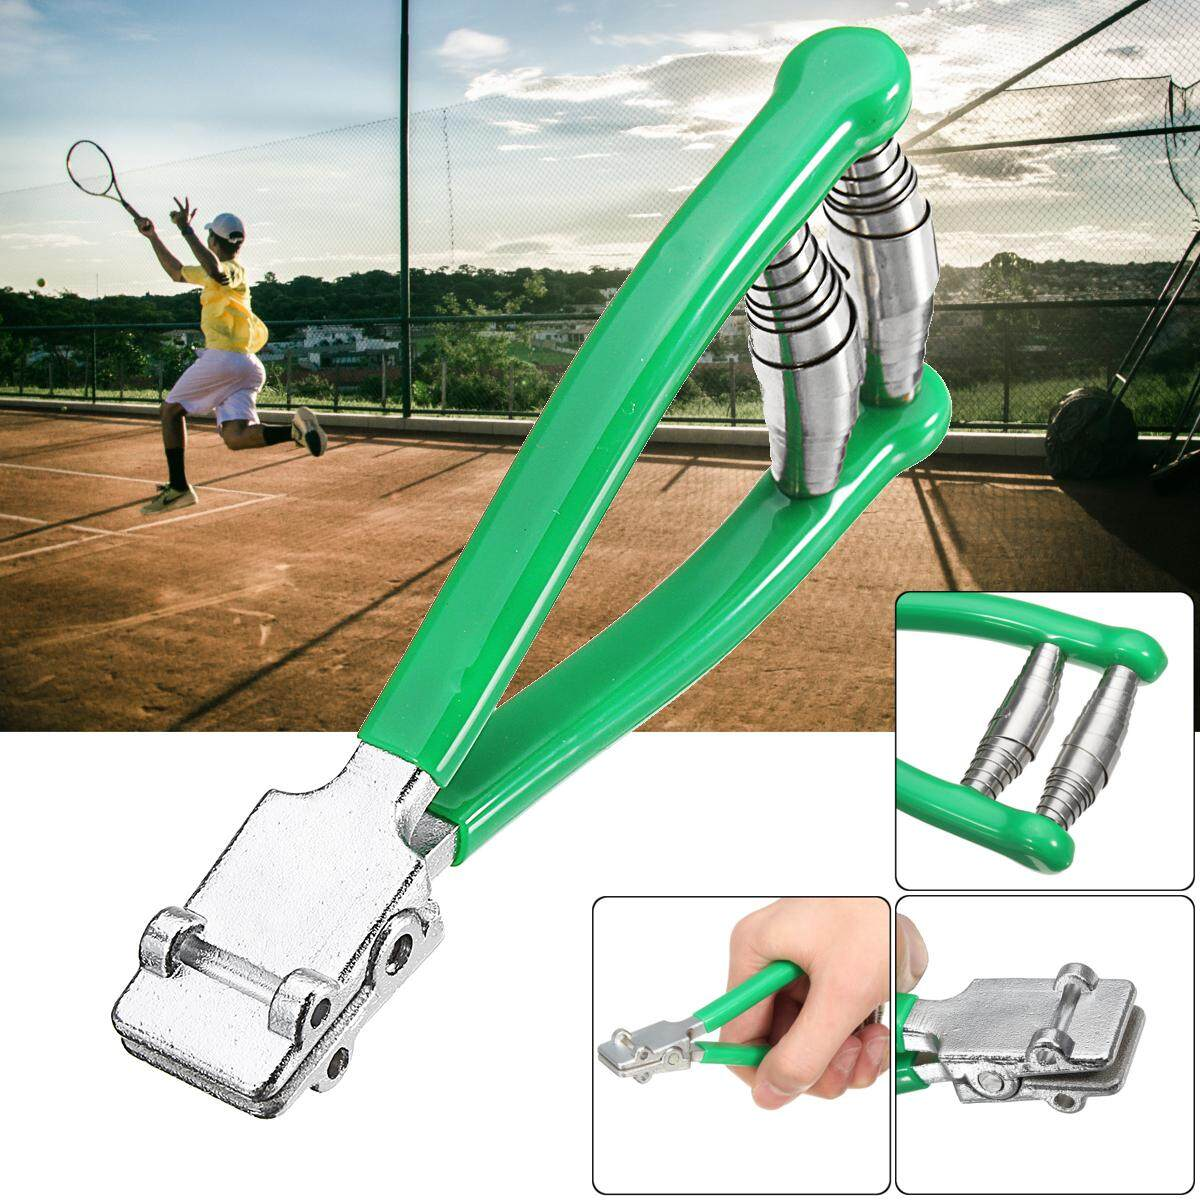 【free Shipping + Flash Deal】stainless Starting Clamp Tennis Squash Badminton Racquet Racket Stringing Tool By Elec Mall.